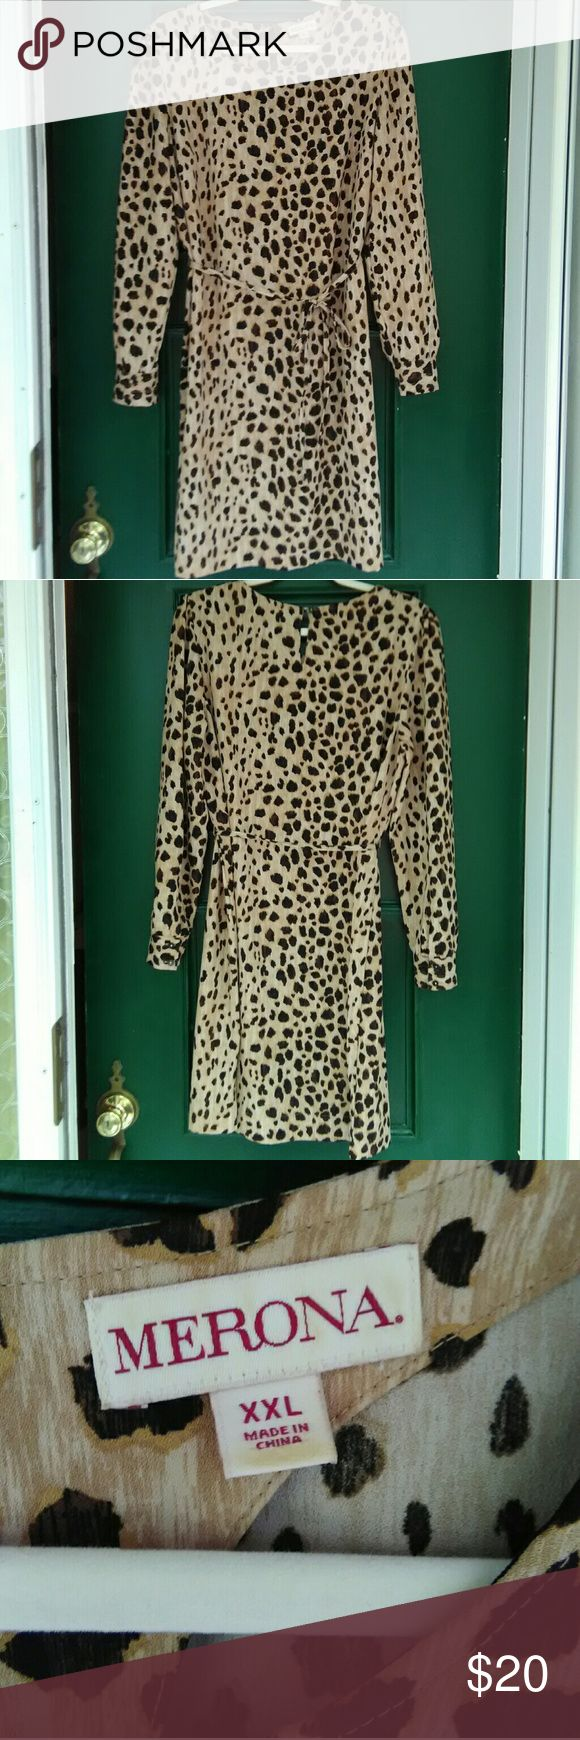 Animal Print Long Sleeve Dress This dress looked amazing on when I used to fit into it. It does stretch so don't let the pencil shape fool you. If you have some curves it looks amazing! The sleeves are cuffed with pretty buttons and the upper sleeve is a princess cut. This is a stunning dress. Merona Dresses Long Sleeve